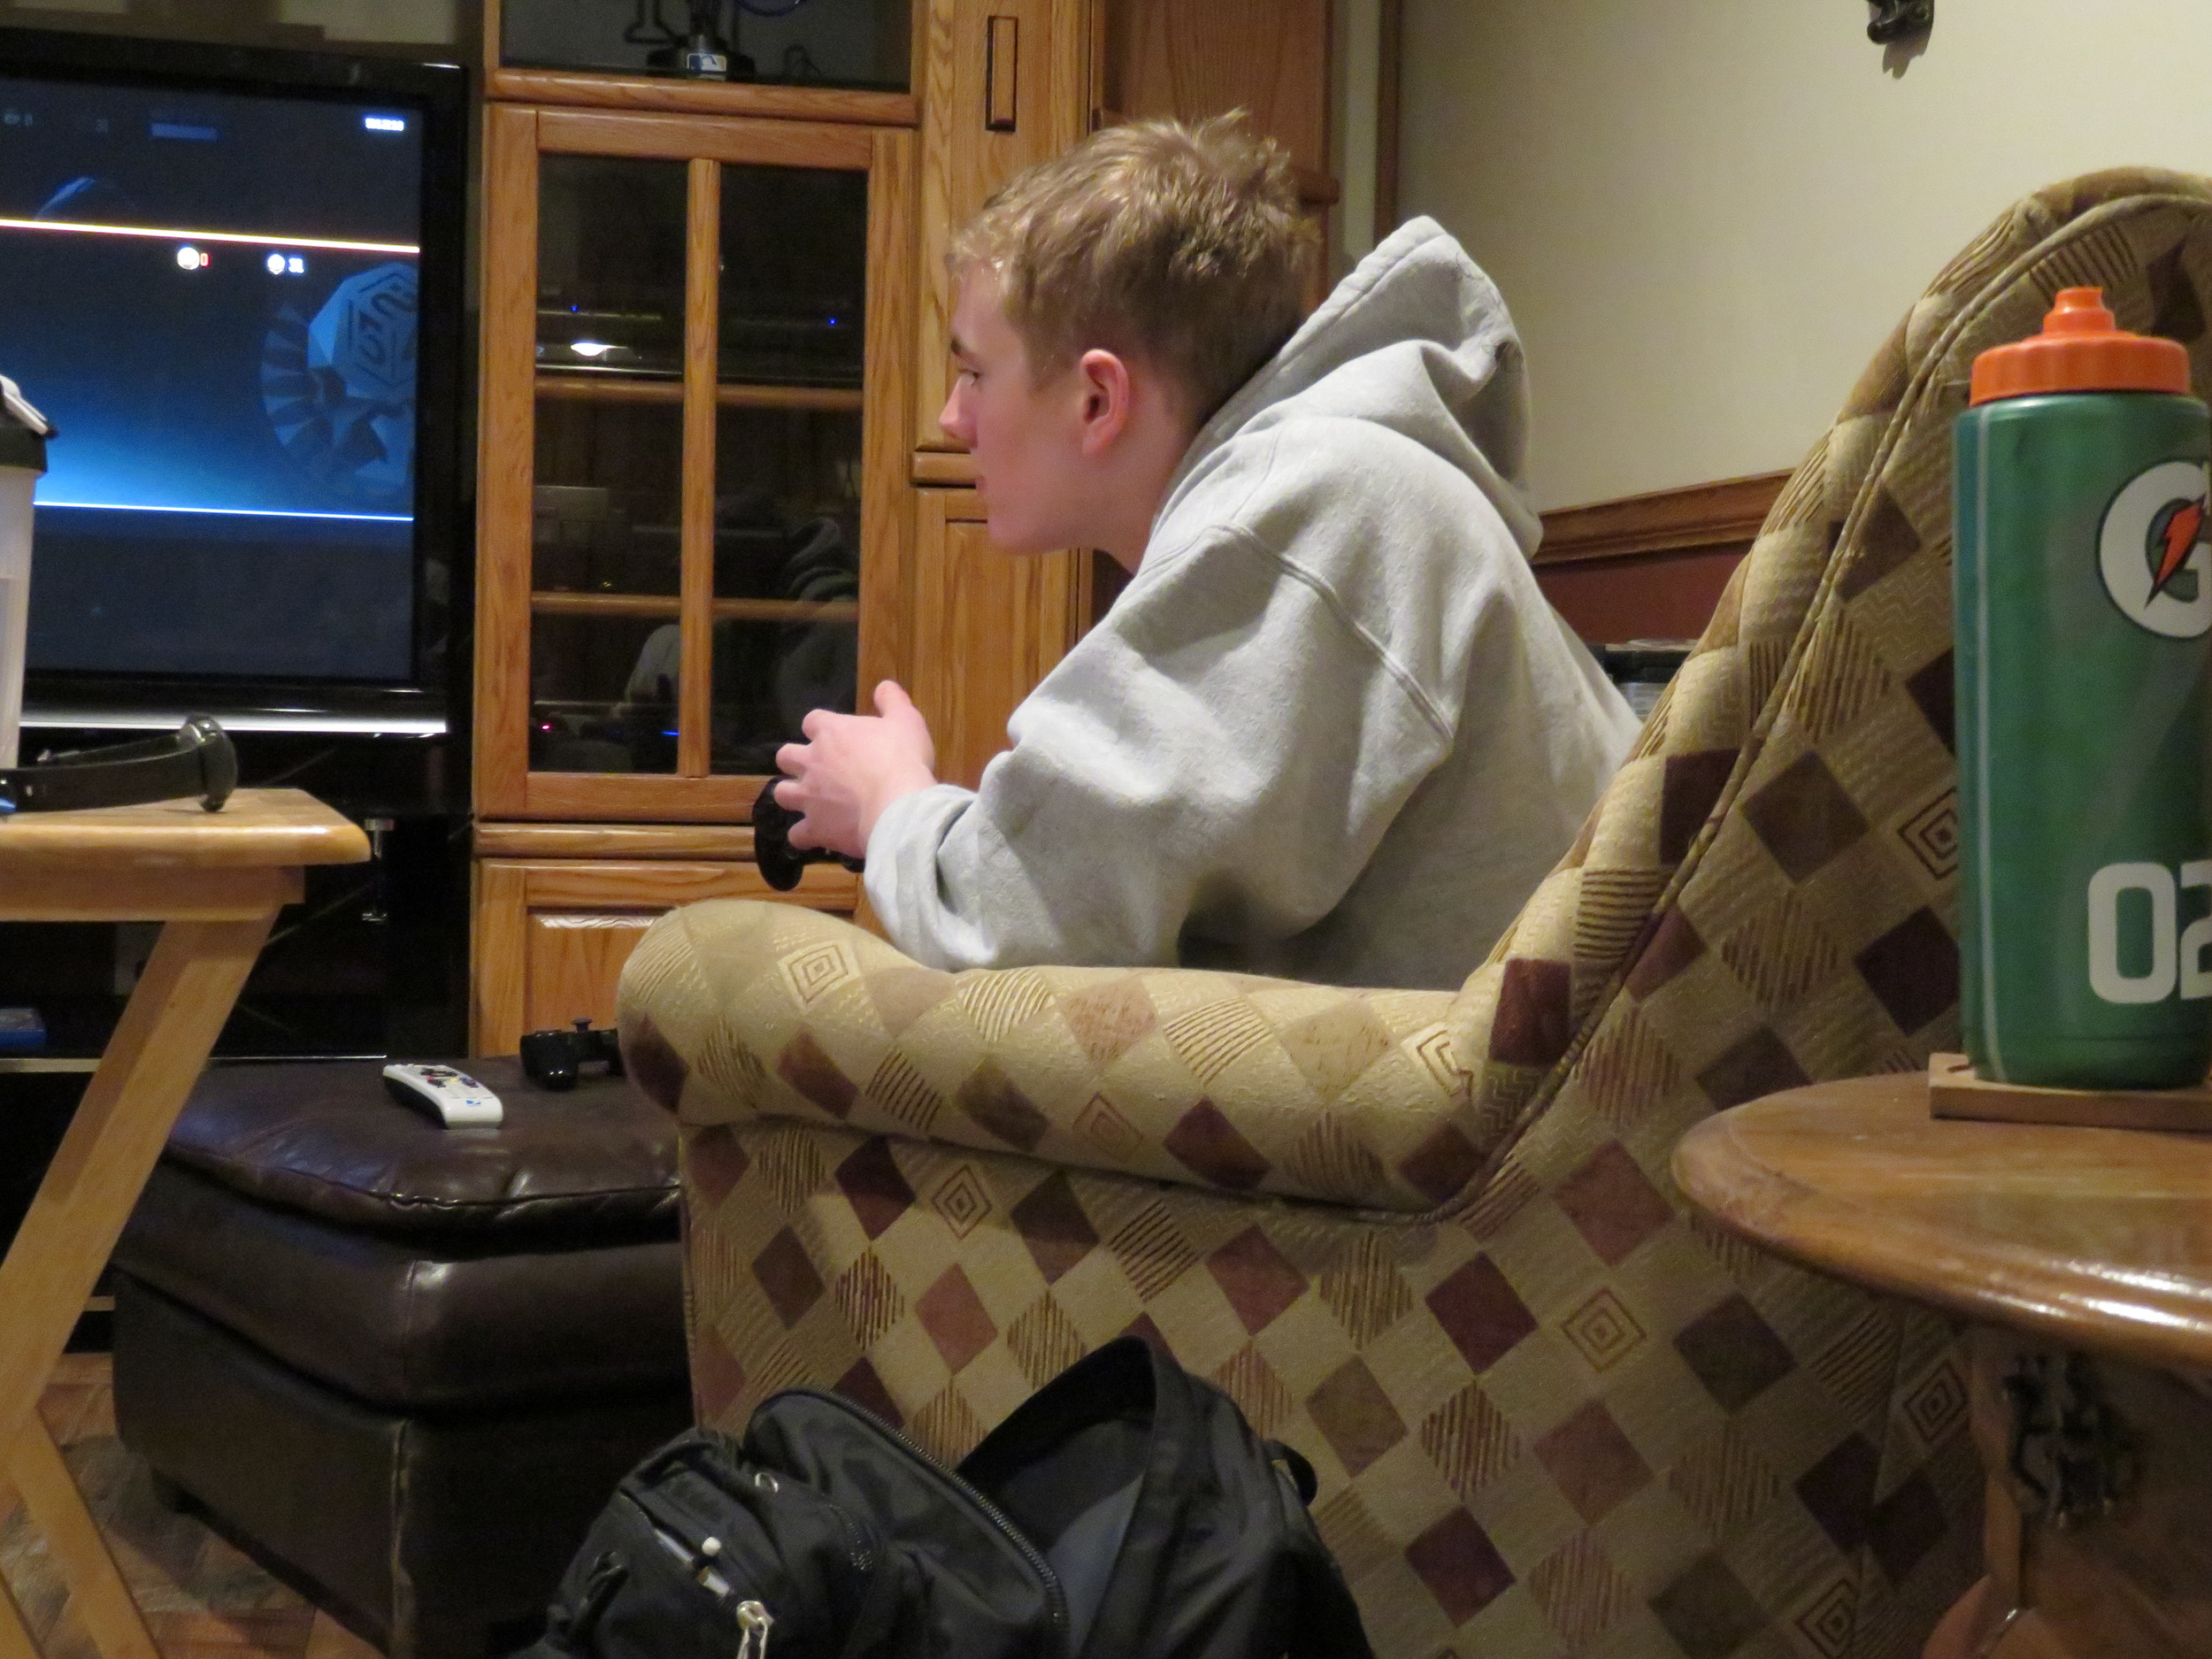 John playing some Call of Duty.